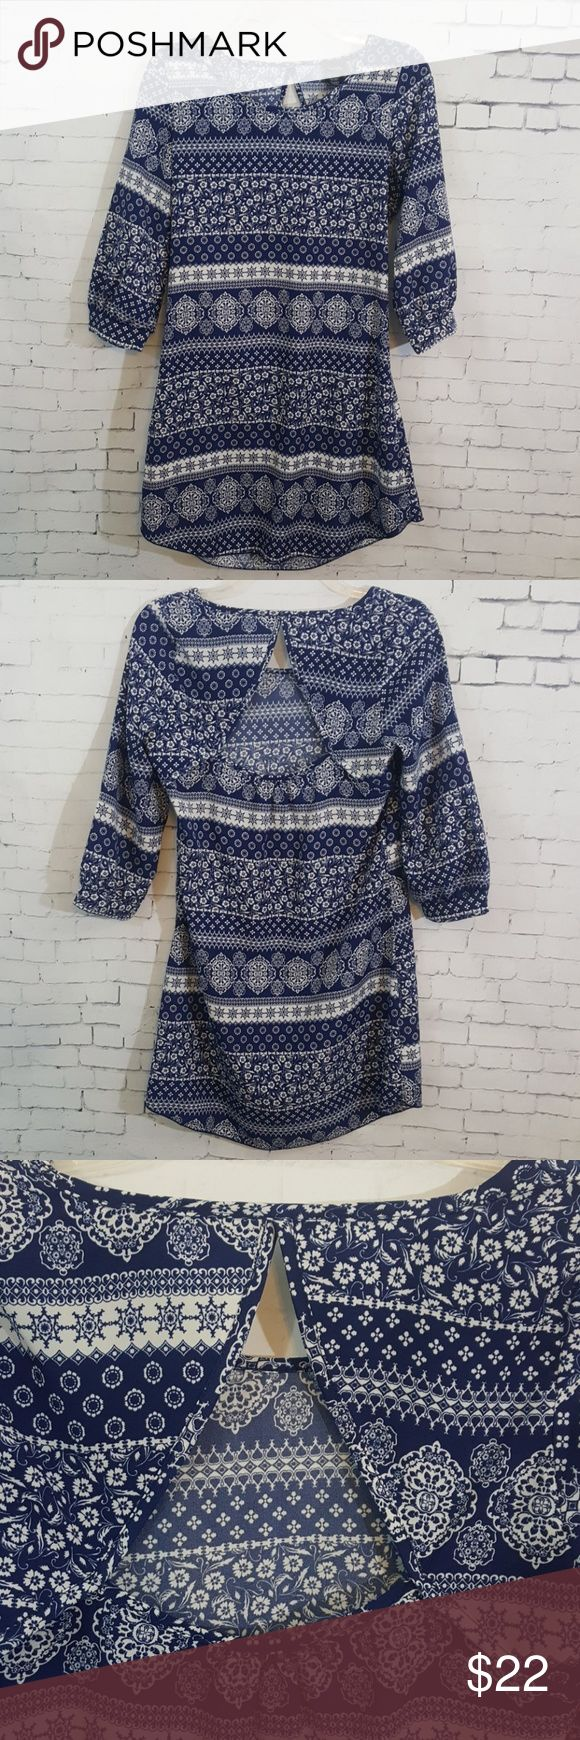 Rue 21 3/4 Sleeved Blue and White Dress Rue 21 Dress Size:  Small   - 100% Polyester - Blue and White  Excellent condition! Rue 21 Dresses Midi